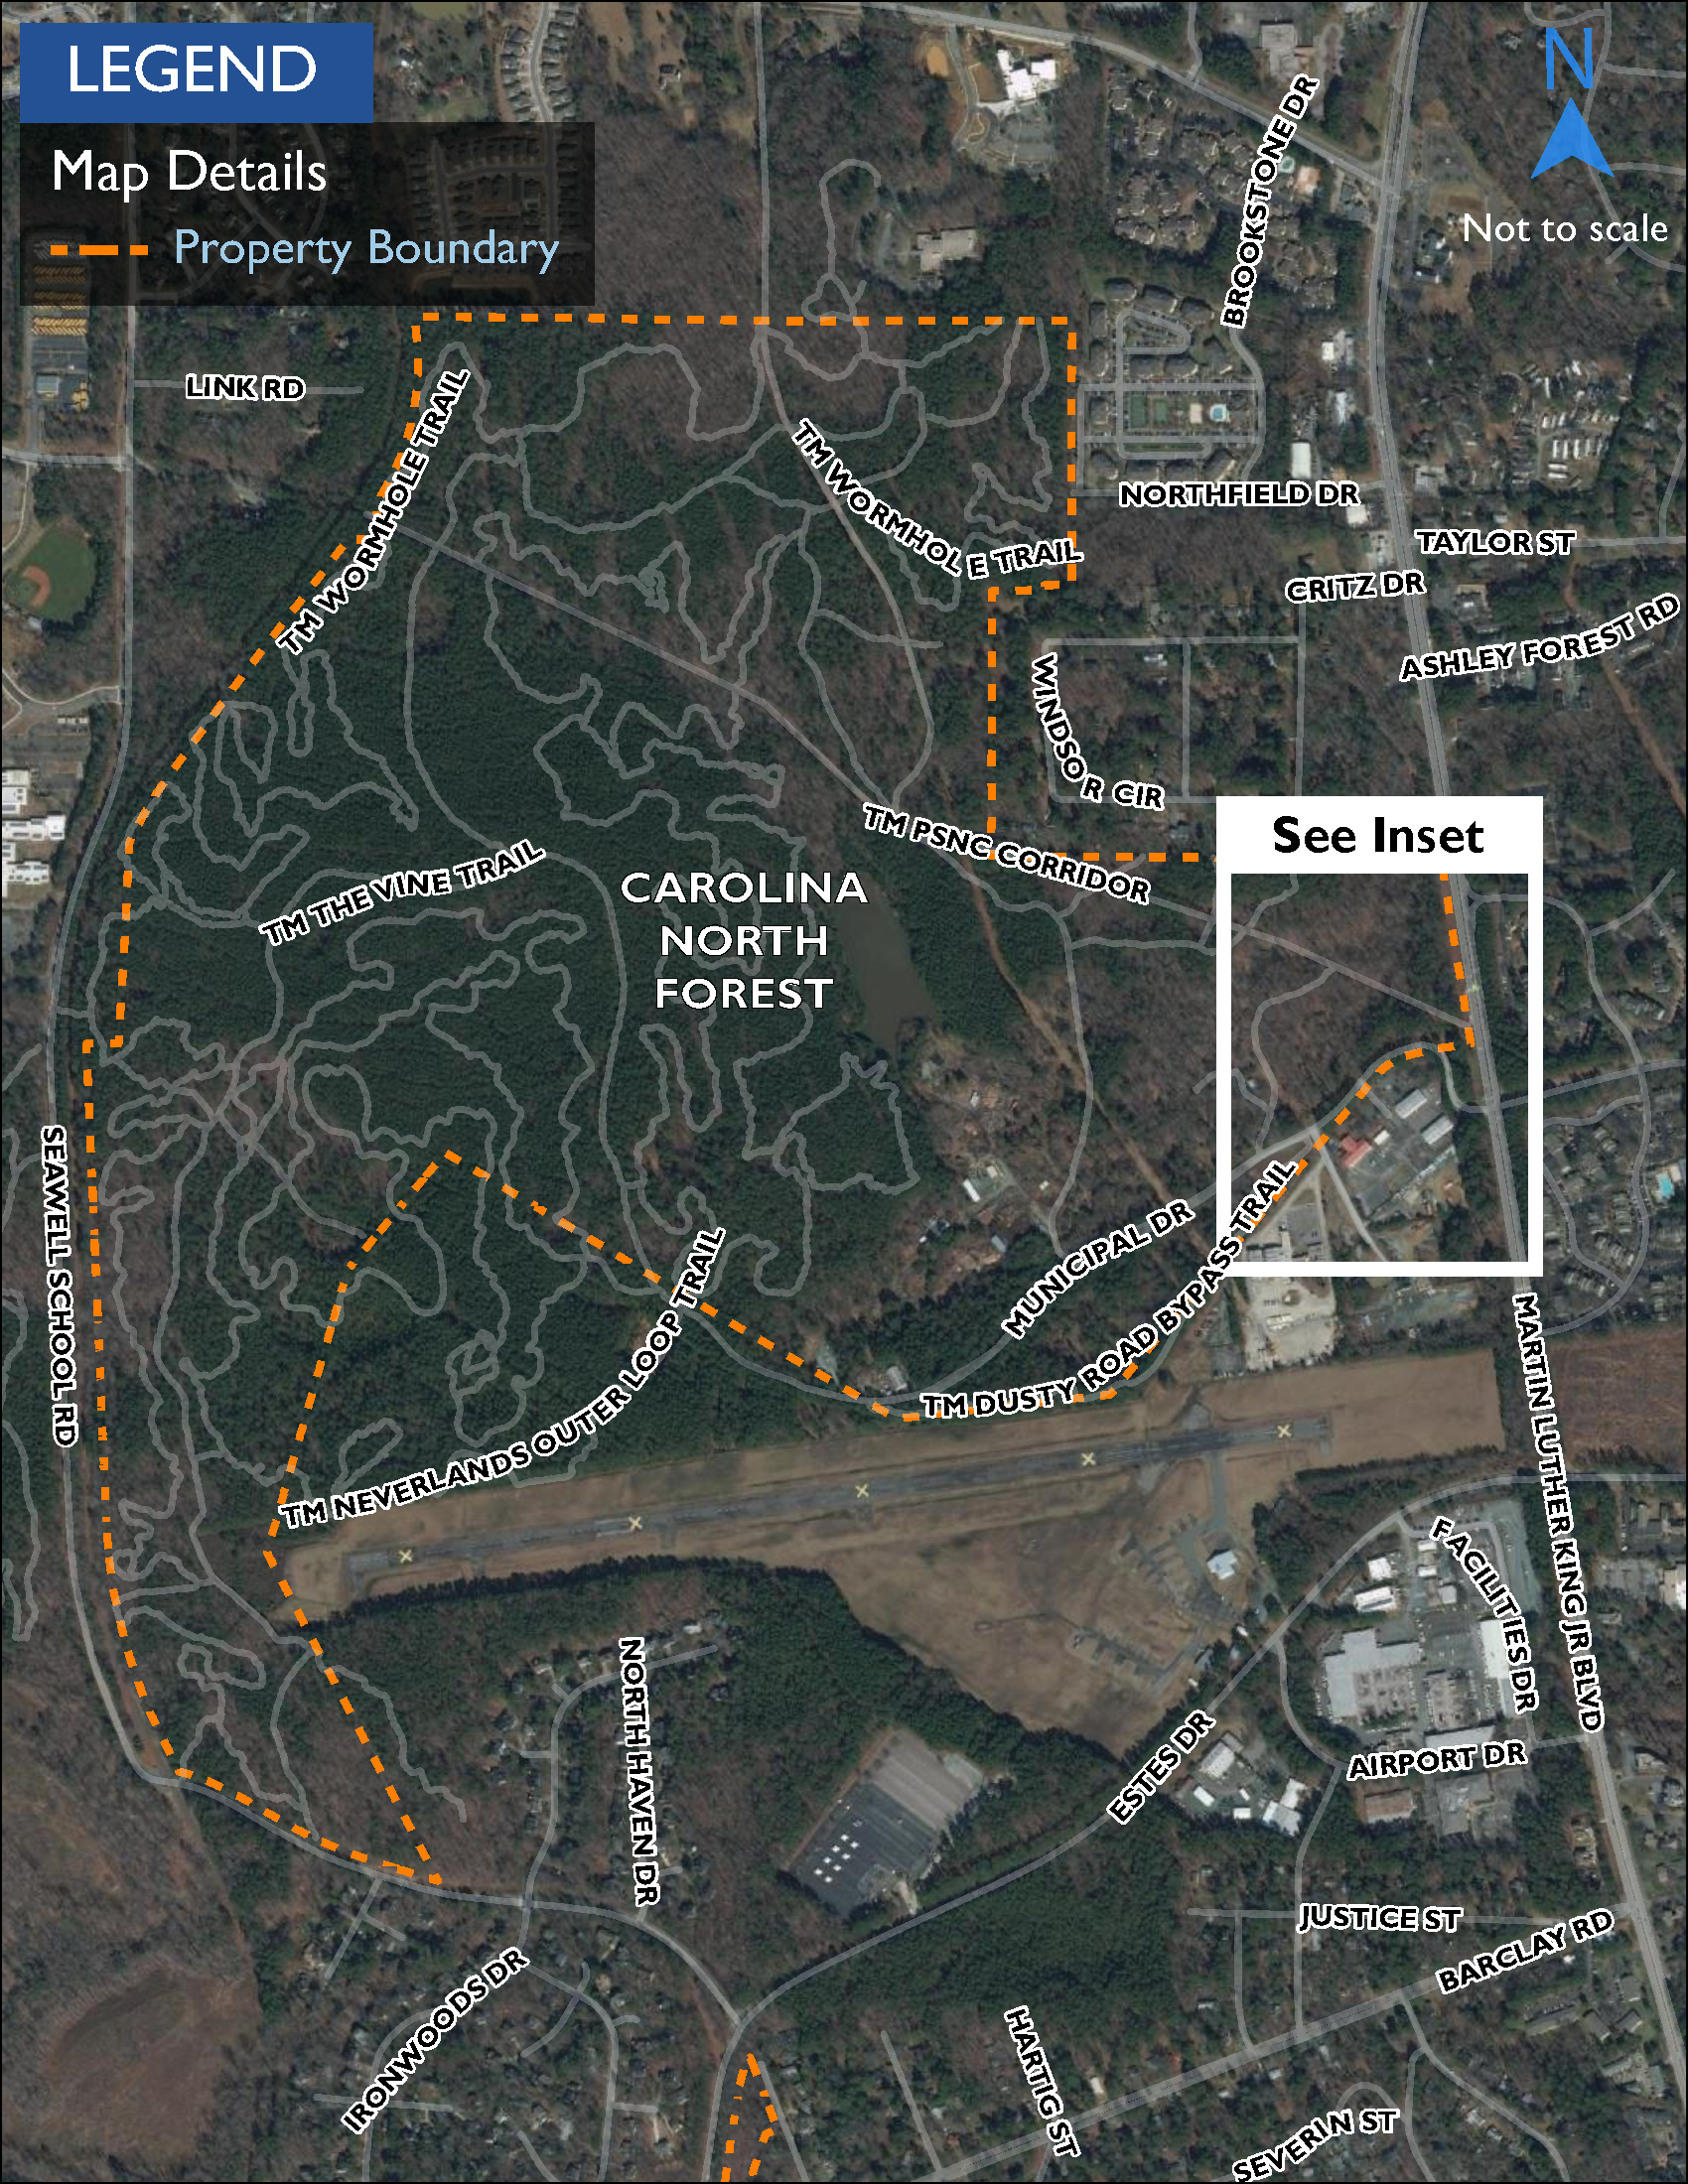 Map showing Carolina North Forest, a 750-acre ecological preserve and woodland park owned by the University of North Carolina.